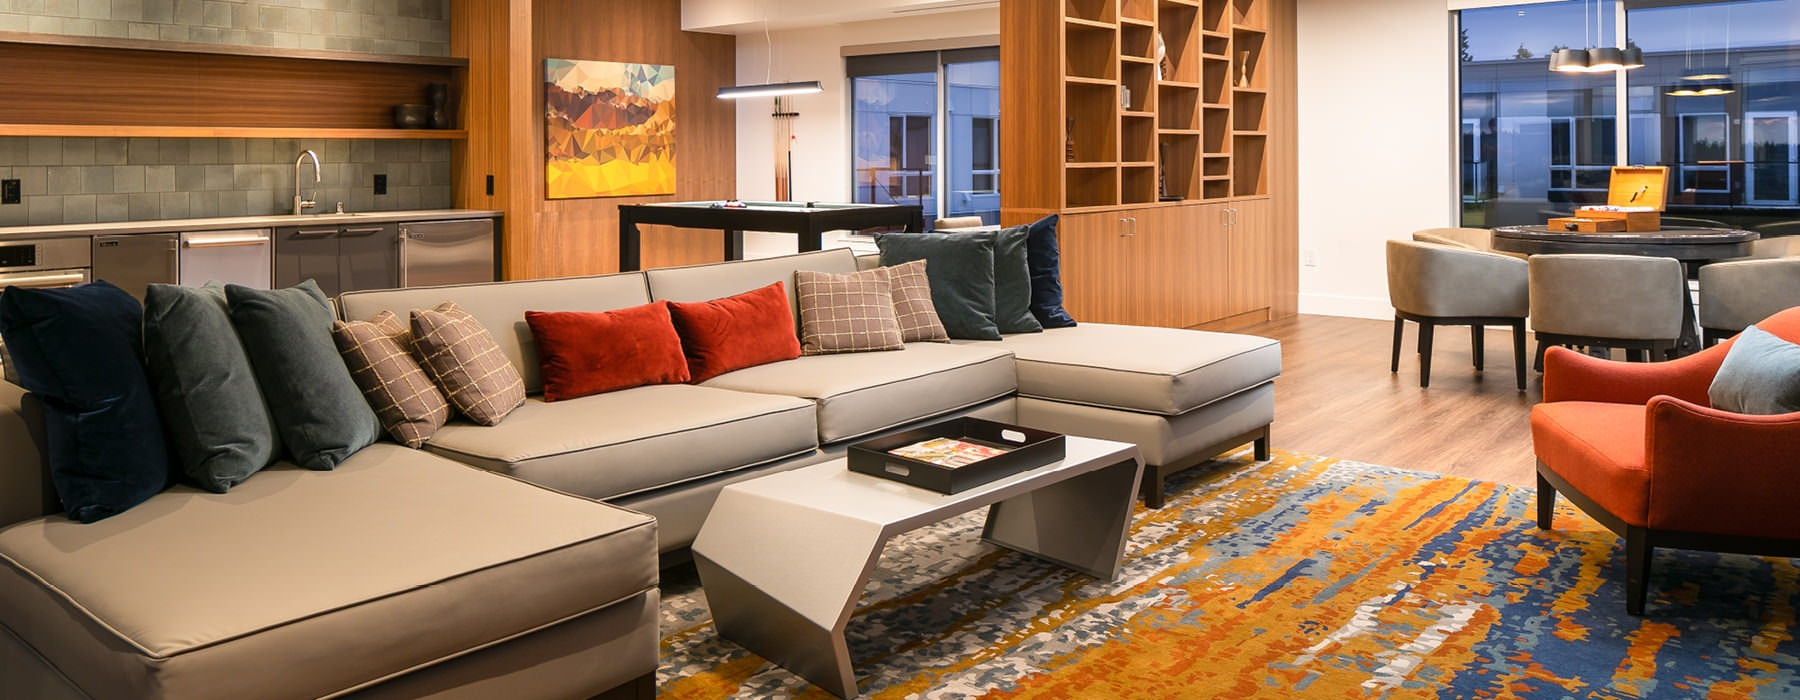 clubroom social areas with ample lighting